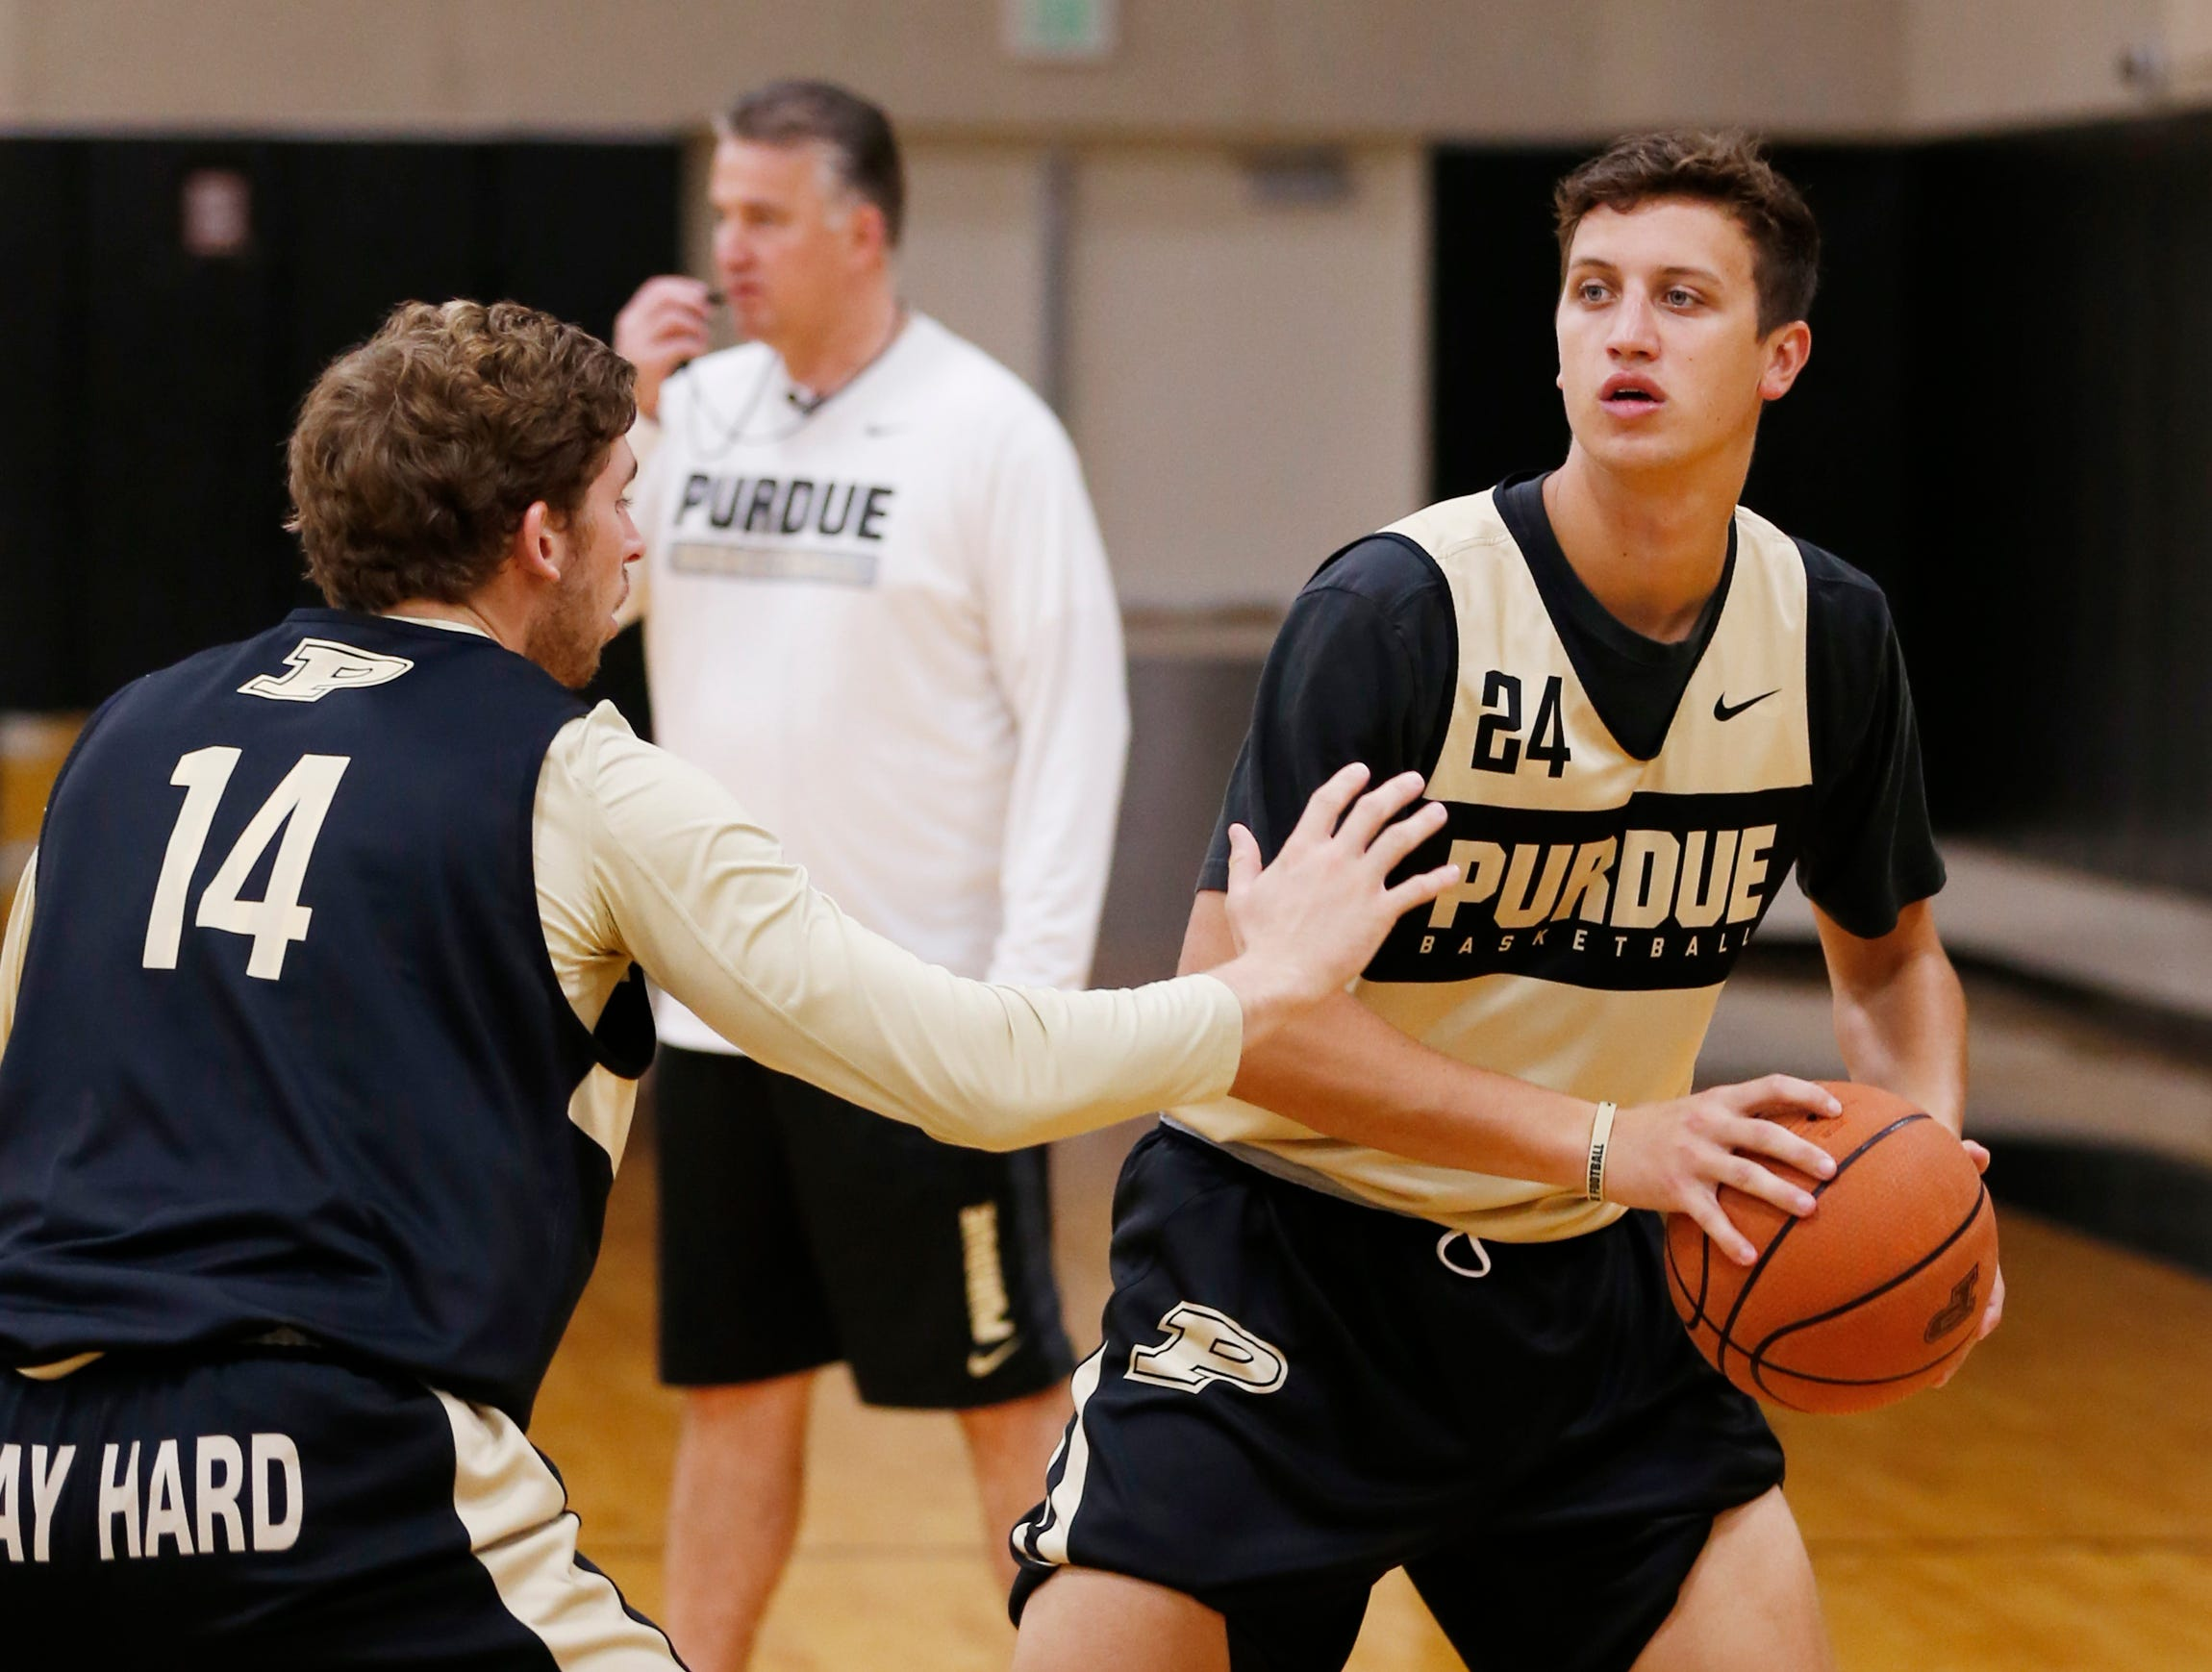 Grady Eifert looks to pass while defended by Ryan Cline during the first official practice of the season for Purdue men's basketball Tuesday, September 25, 2018, at Cardinal Court in Mackey Arena.